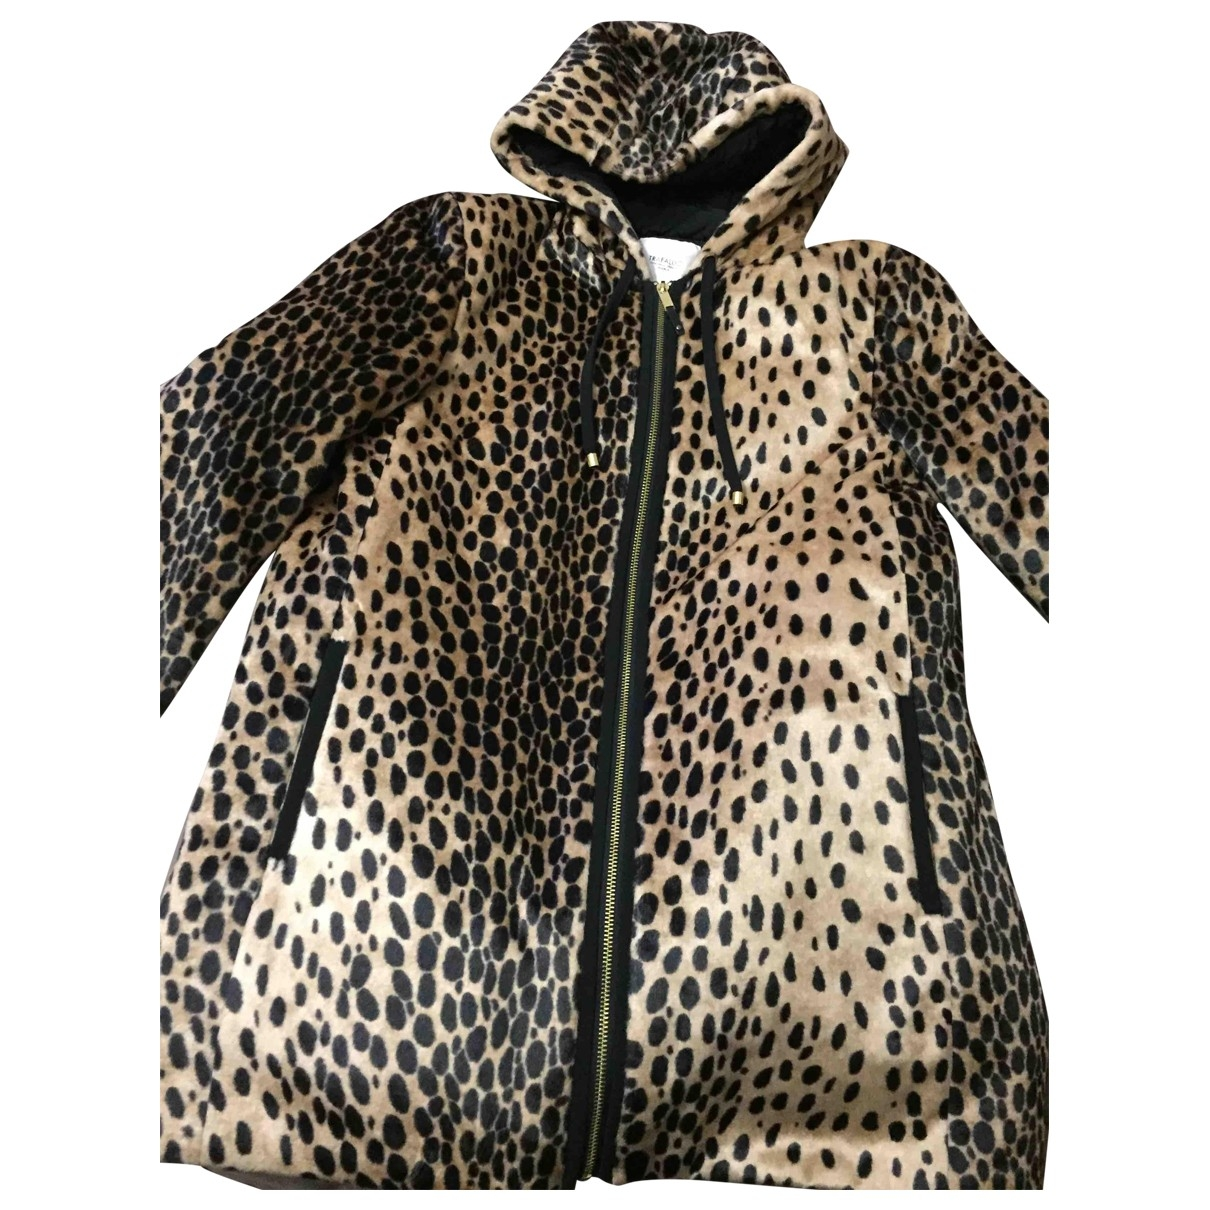 Zara \N coat for Women 44 IT